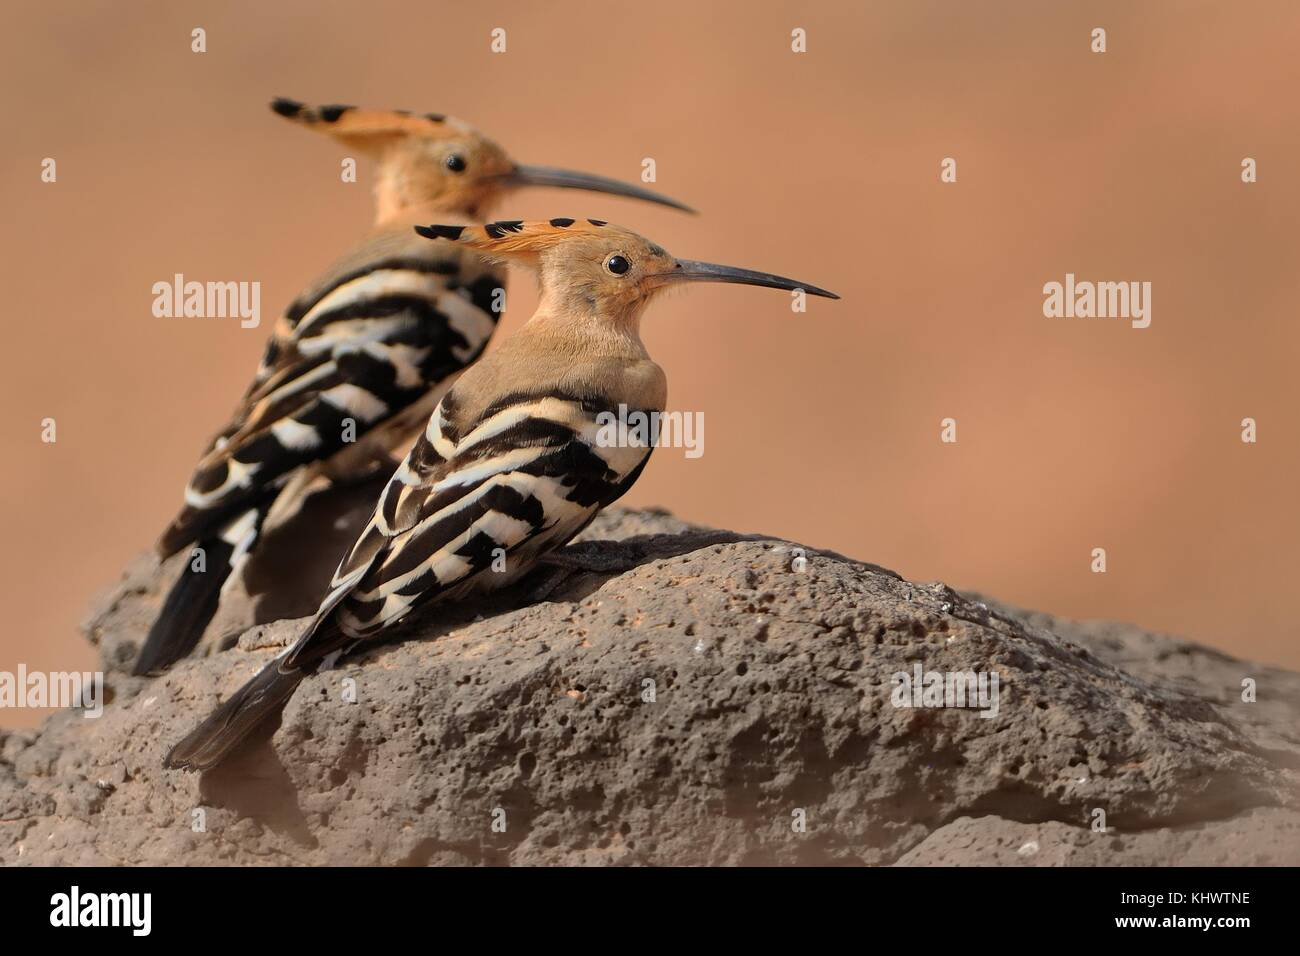 Eurasian Hoopoe - Upupa epops the pair sitting on the rock - Stock Image